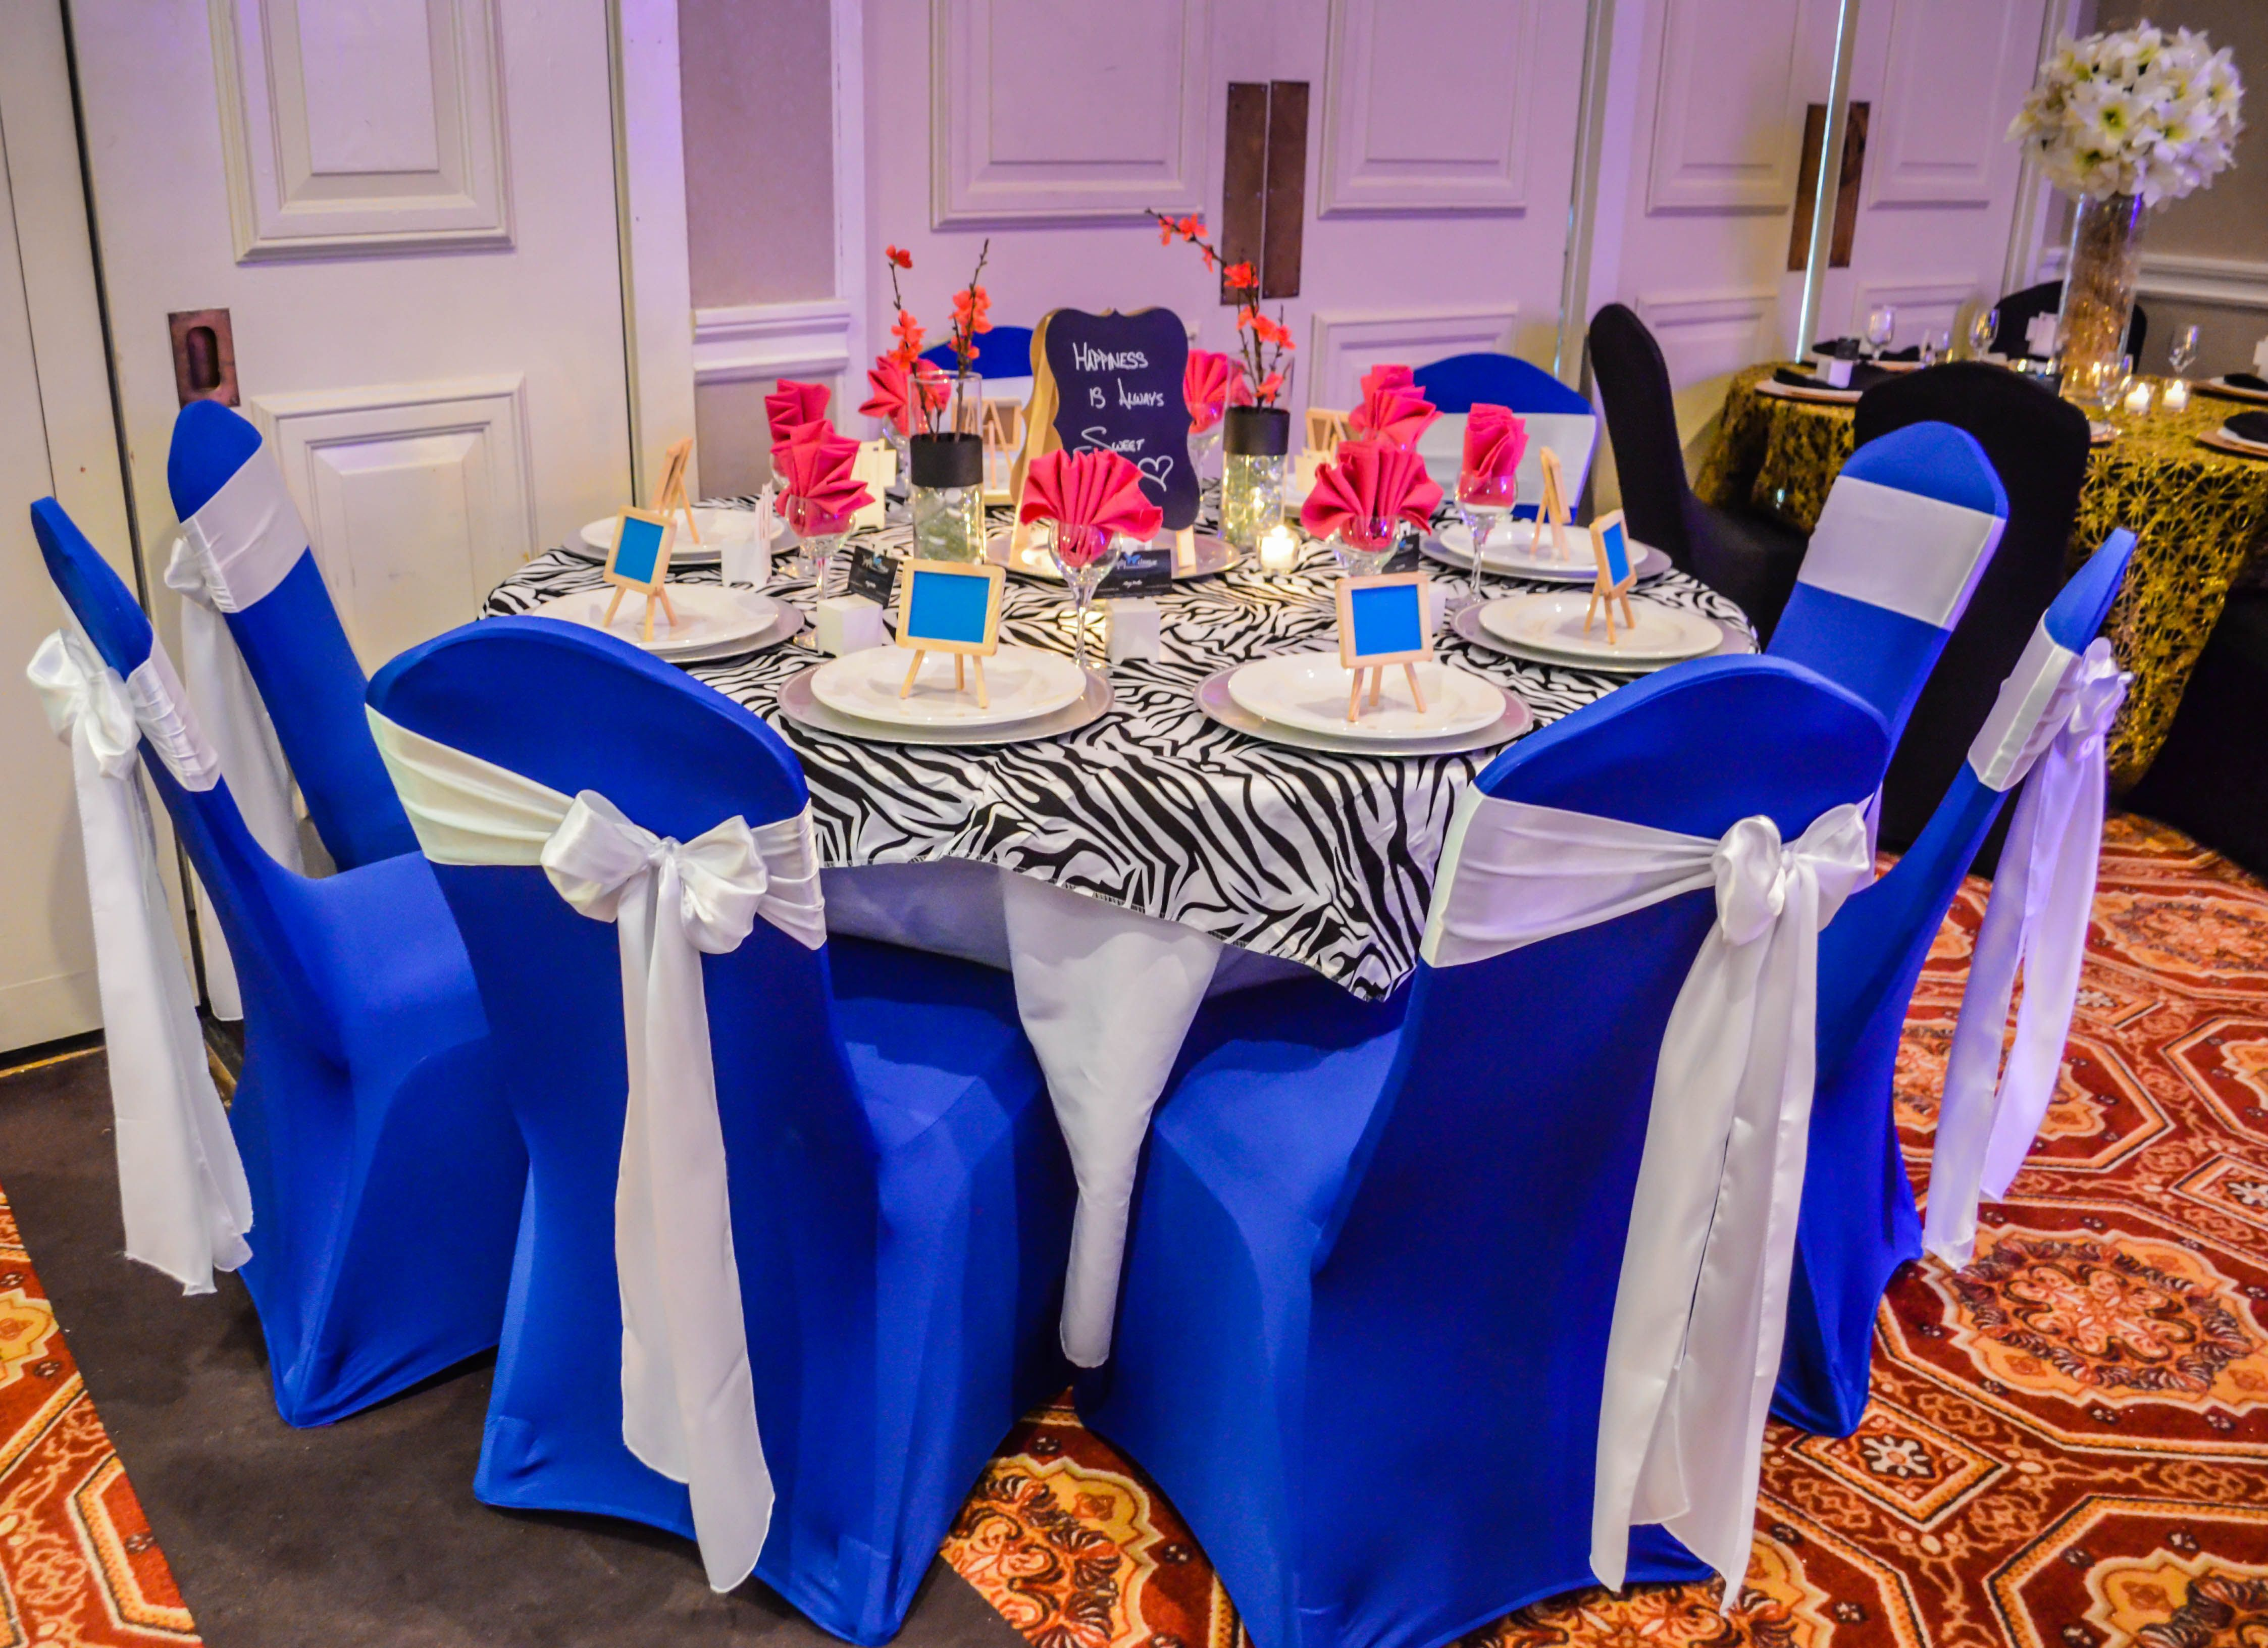 Blue Spandex Chair Covers Ikea Outdoor Folding Chairs Royal Cover Rent Collections At Will Certainly Stand Out In Any Setting Offer A Distinctive Look And We Them To Our